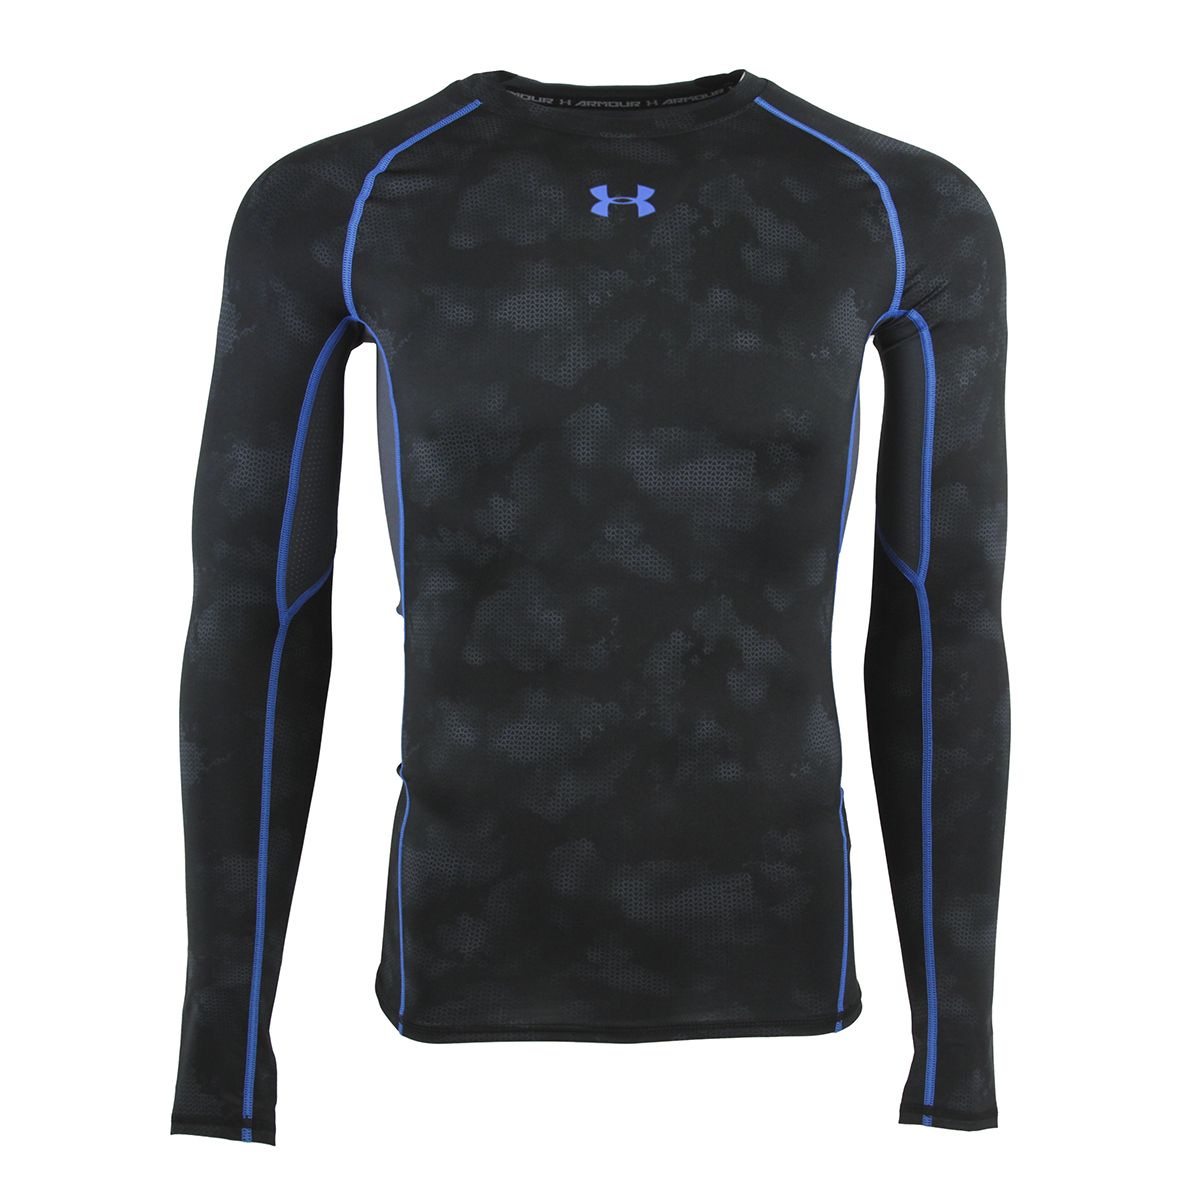 Under Armour Men's HeatGear Armour Printed Compression L/S Shirt